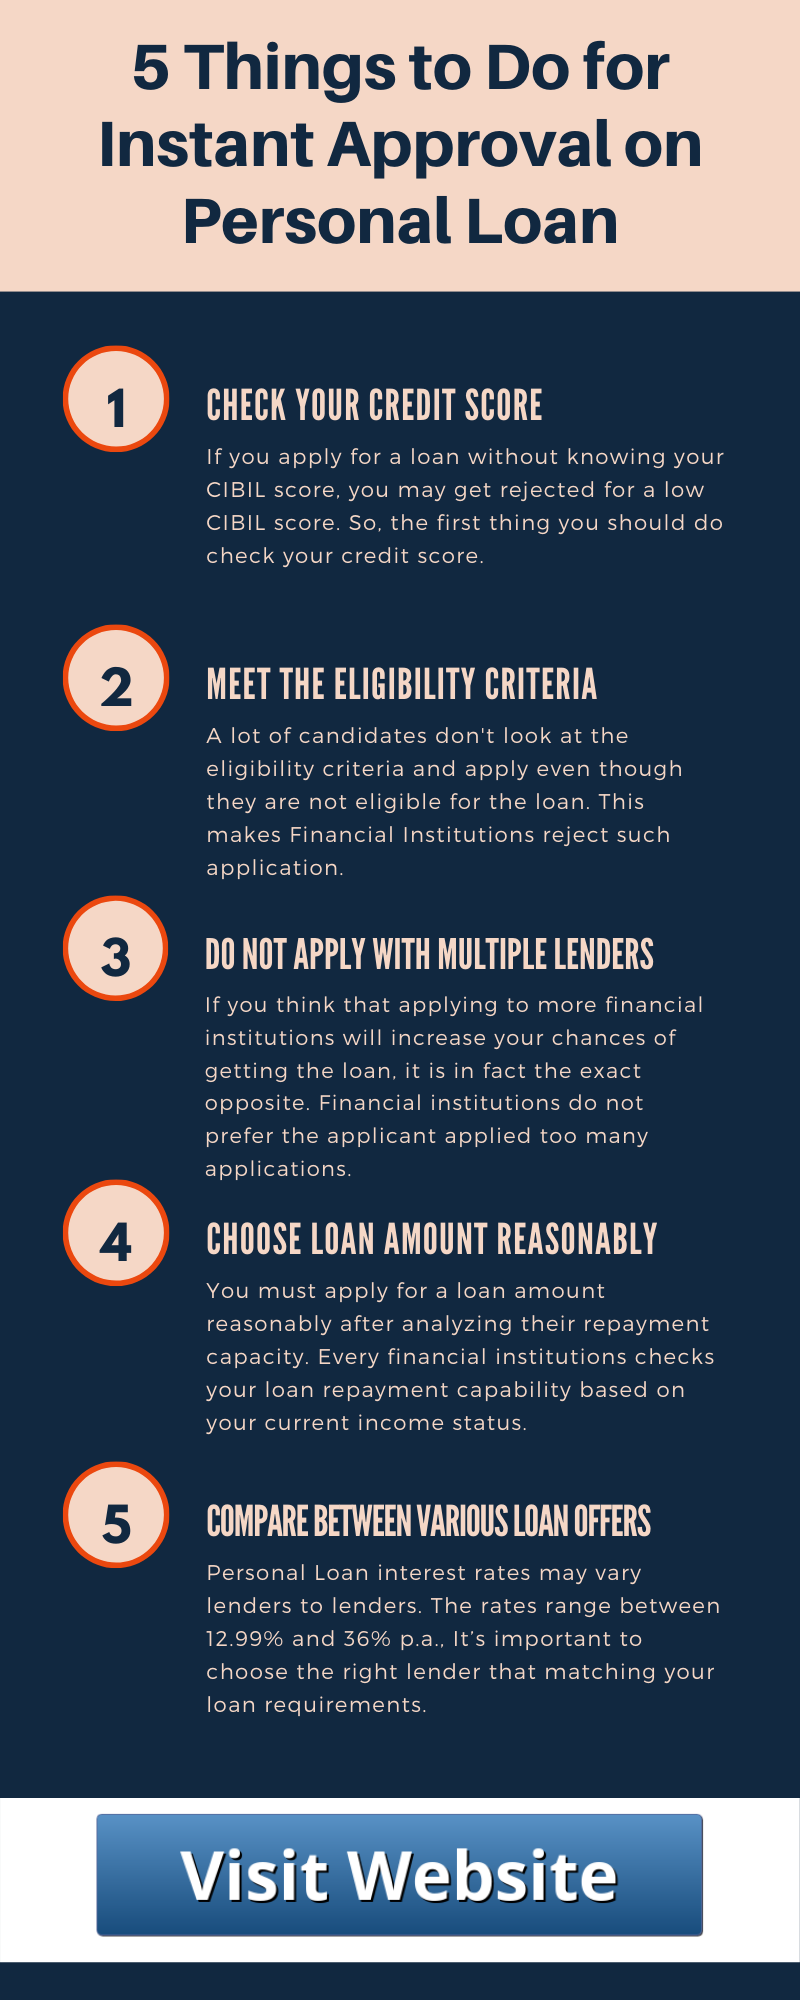 5 Things To Do For Instant Approval On Personal Loan In 2020 Personal Loans Loan Personal Loans Online